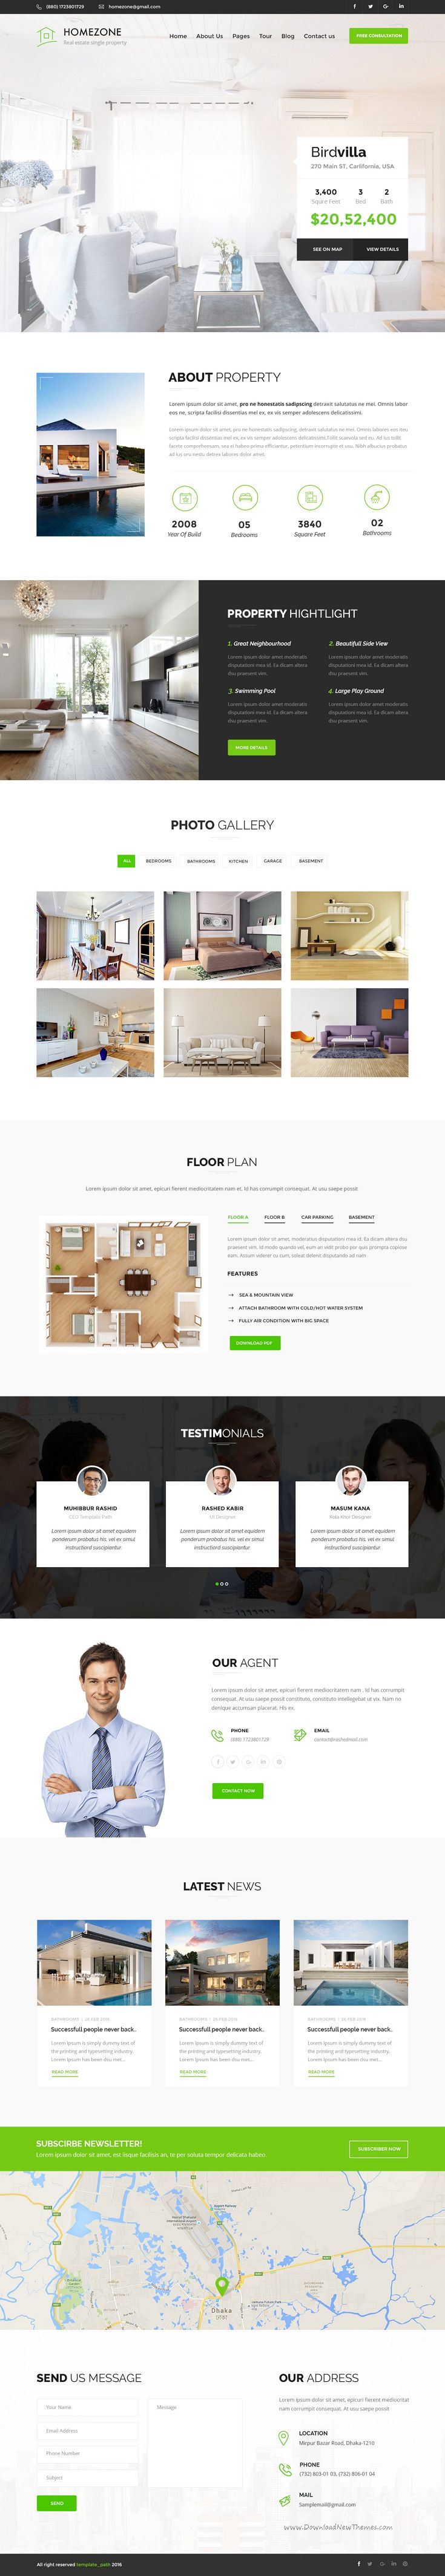 HOMEZONE - Single Property Real Estate PSD Template | Moderno